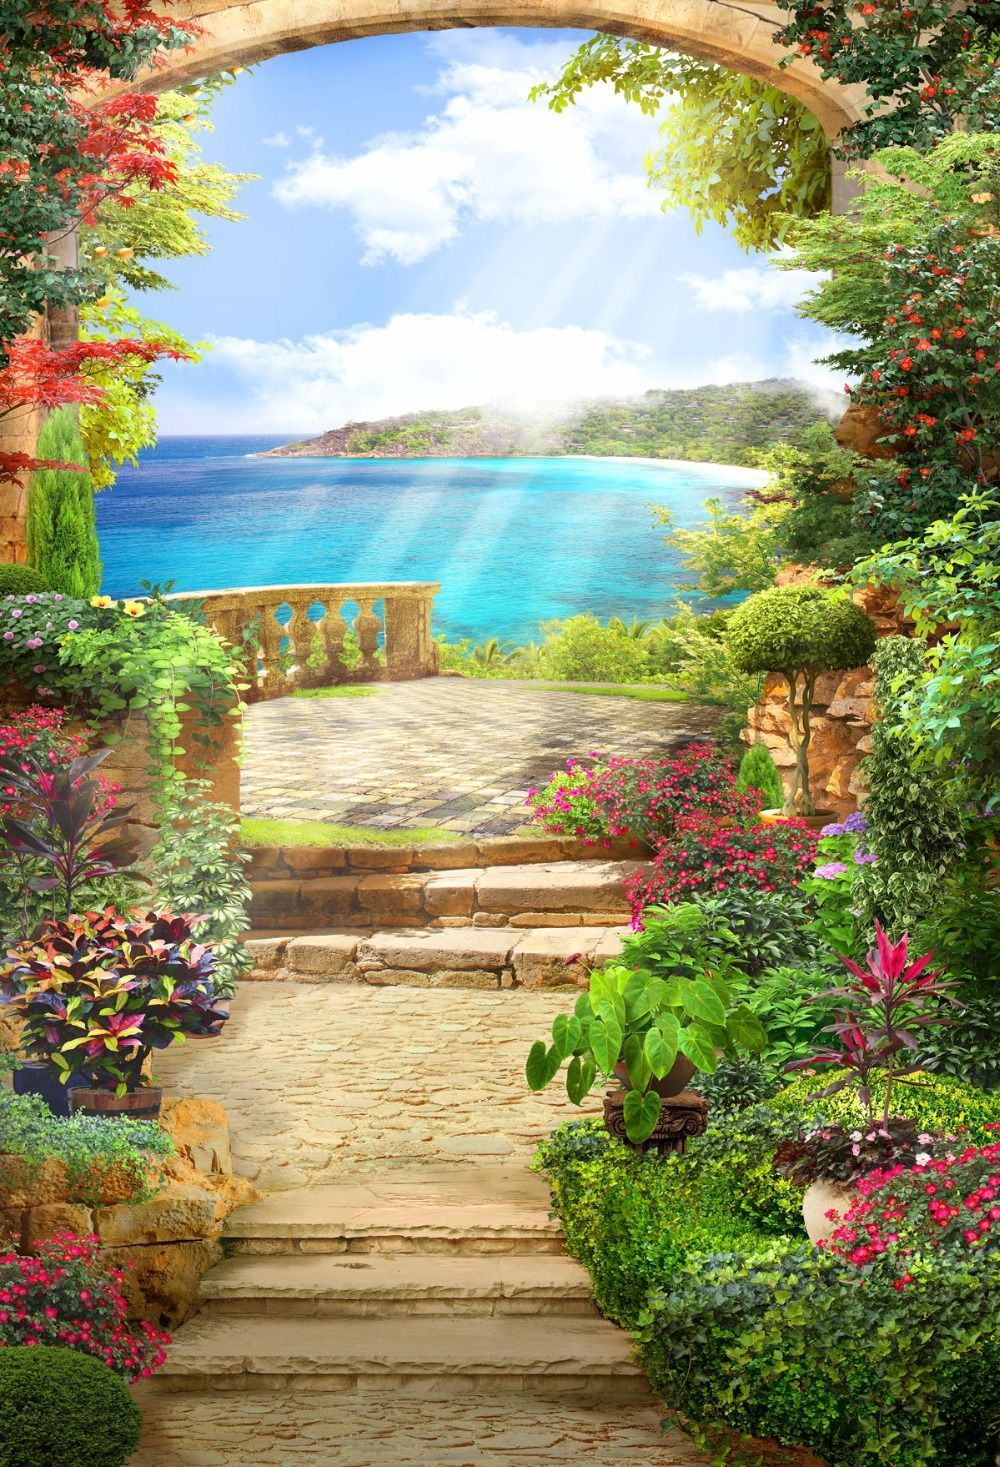 24 Ineffable Flower Garden Anime That Look Fantastic Beautiful Landscape Wallpaper Vinyl Photo Backdrops Photography Backdrops